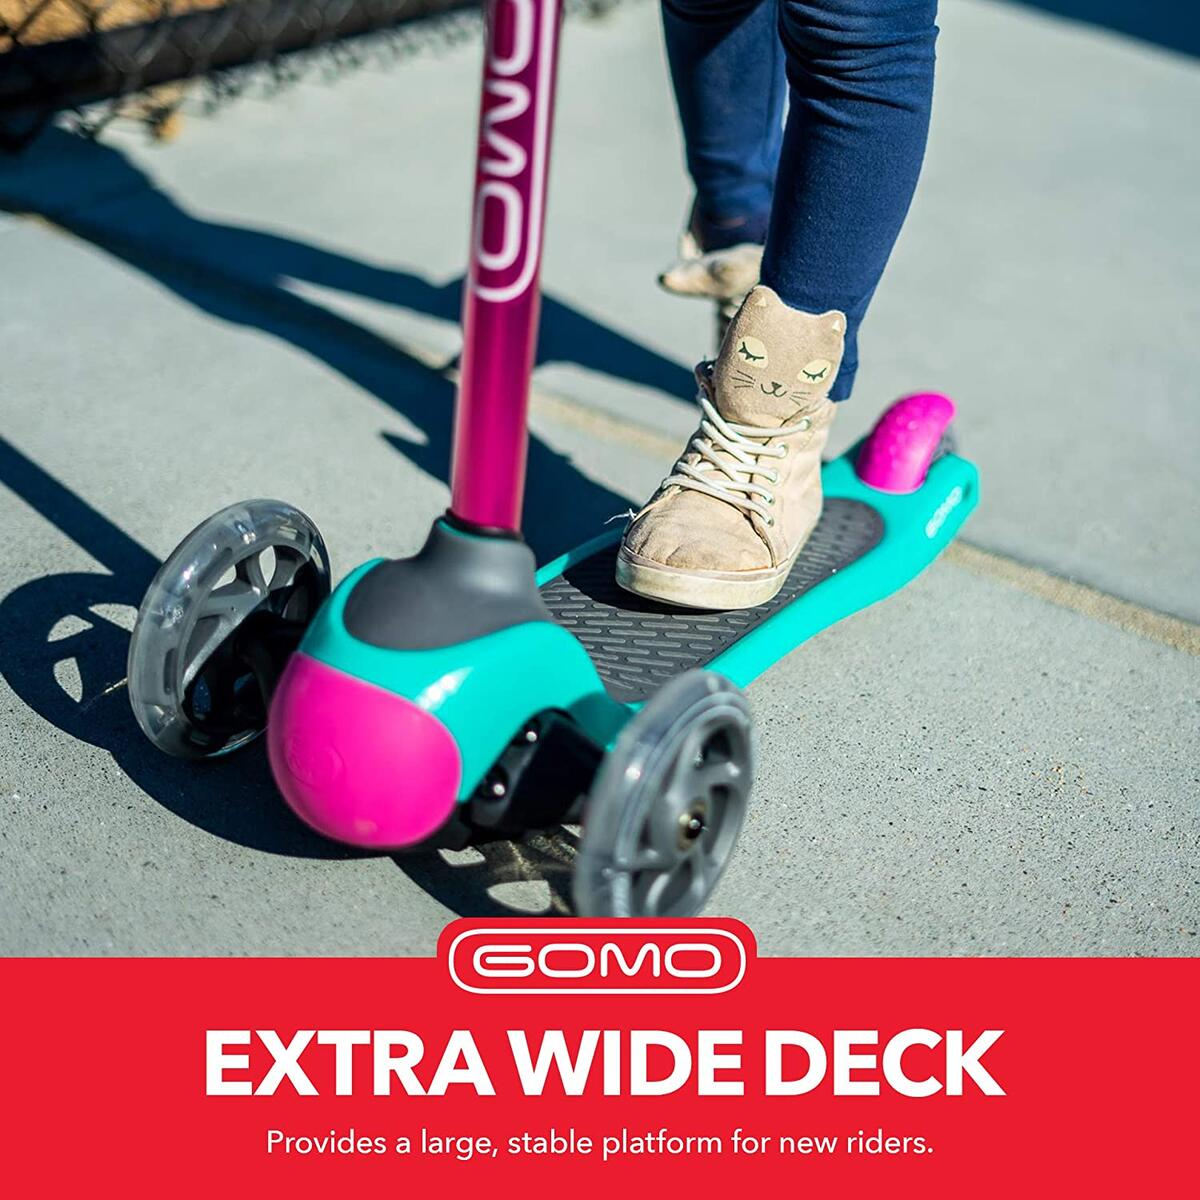 GOMO 3 Wheel Scooter for Kids (PINK COLOR ONLY)